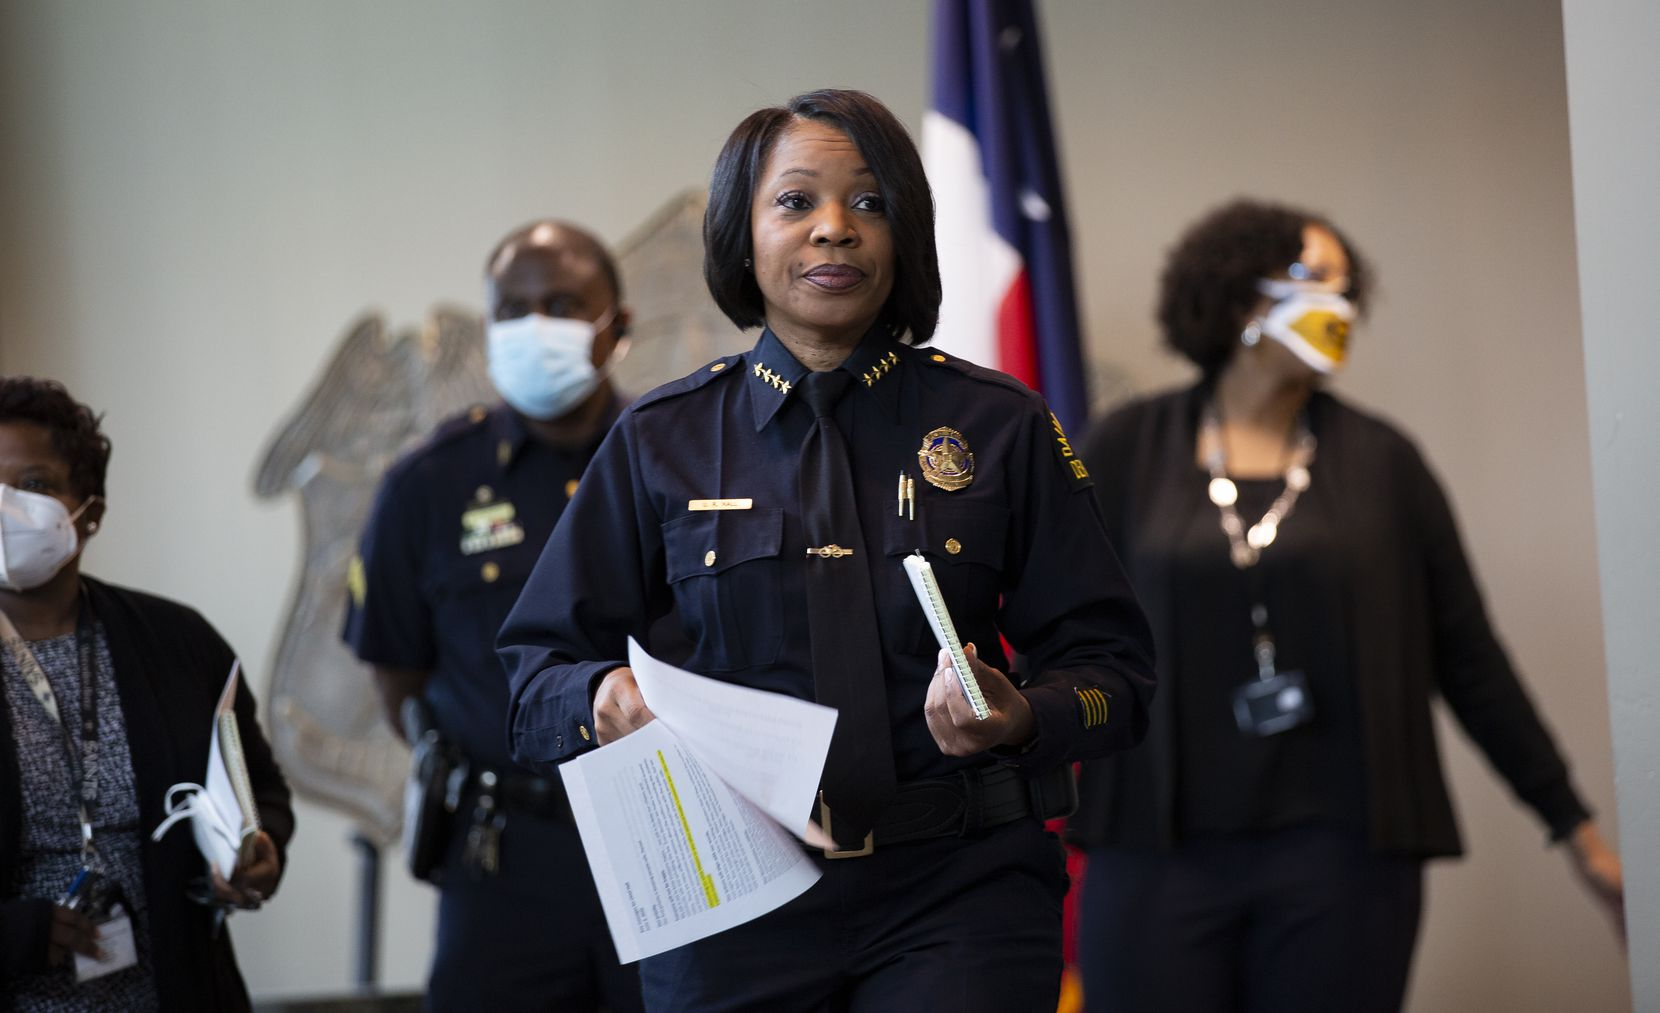 Dallas Police Chief U. Reneé Hall at police headquarters on June 2, 2020.